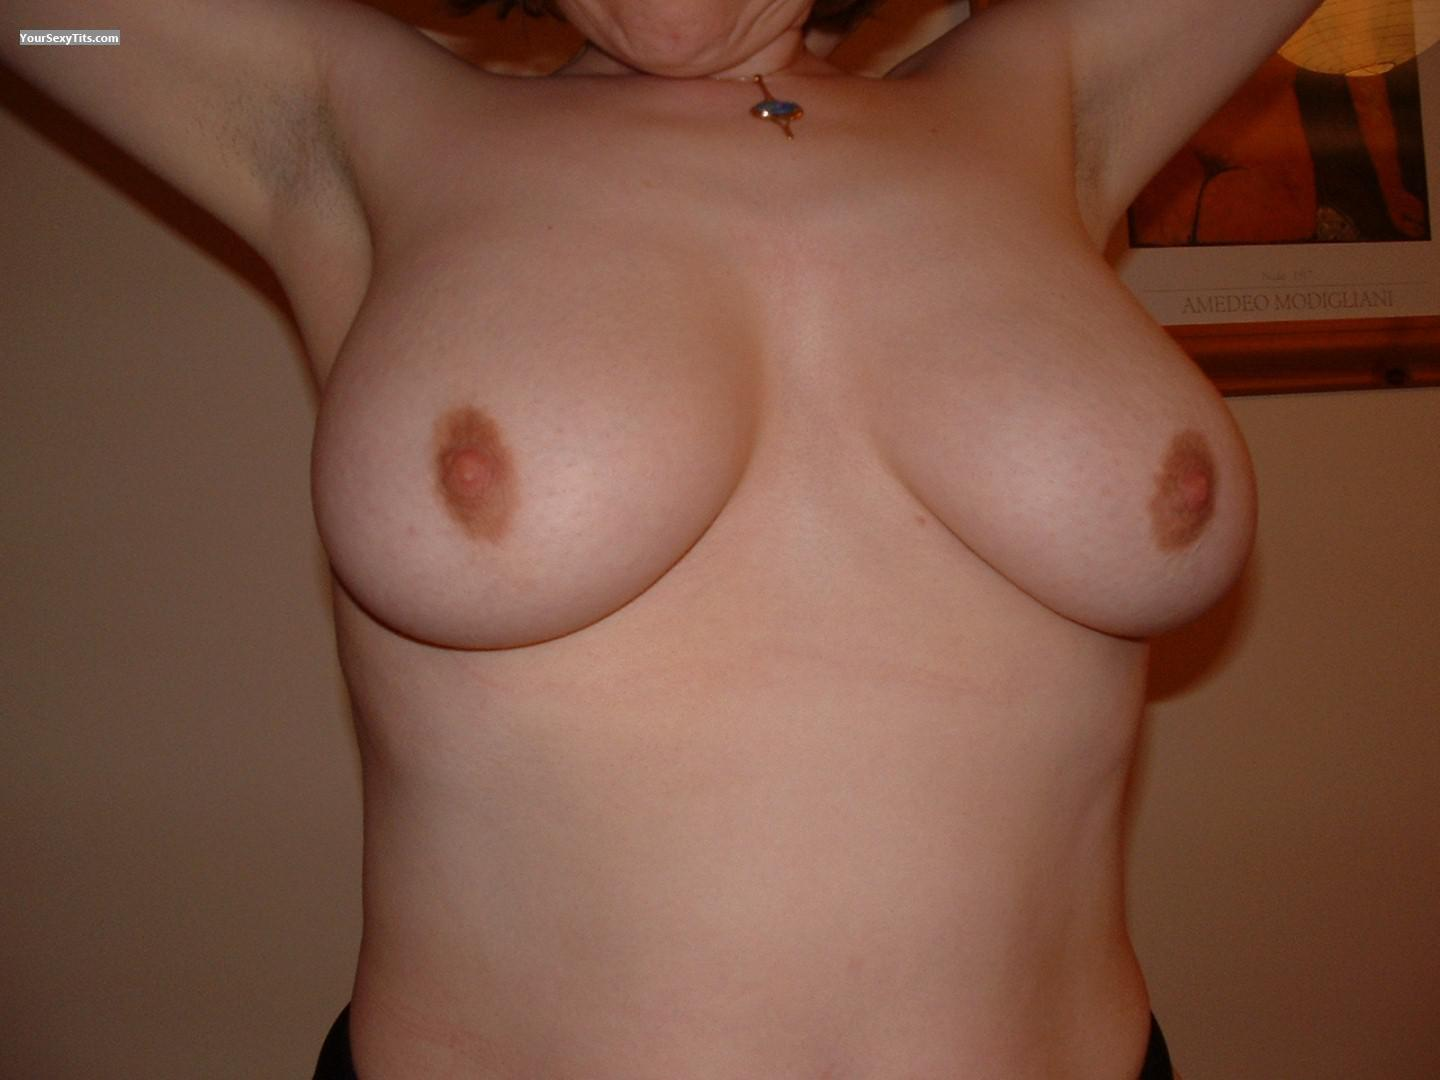 Tit Flash: Wife's Big Tits - Tas from Australia